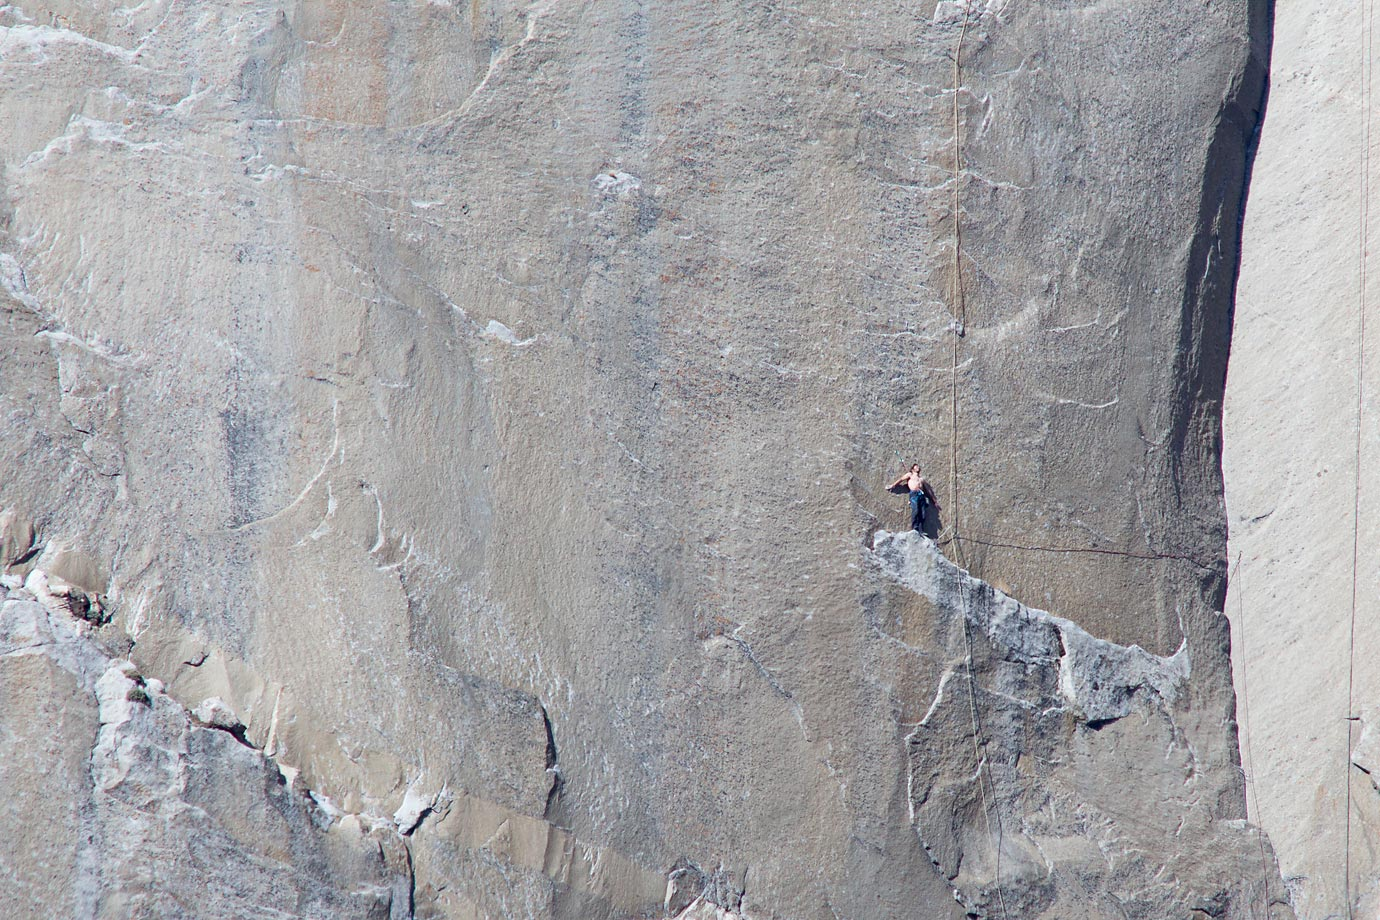 Kevin Jorgeson (shirtless) stands at the beginning of Pitch 18 looking up.